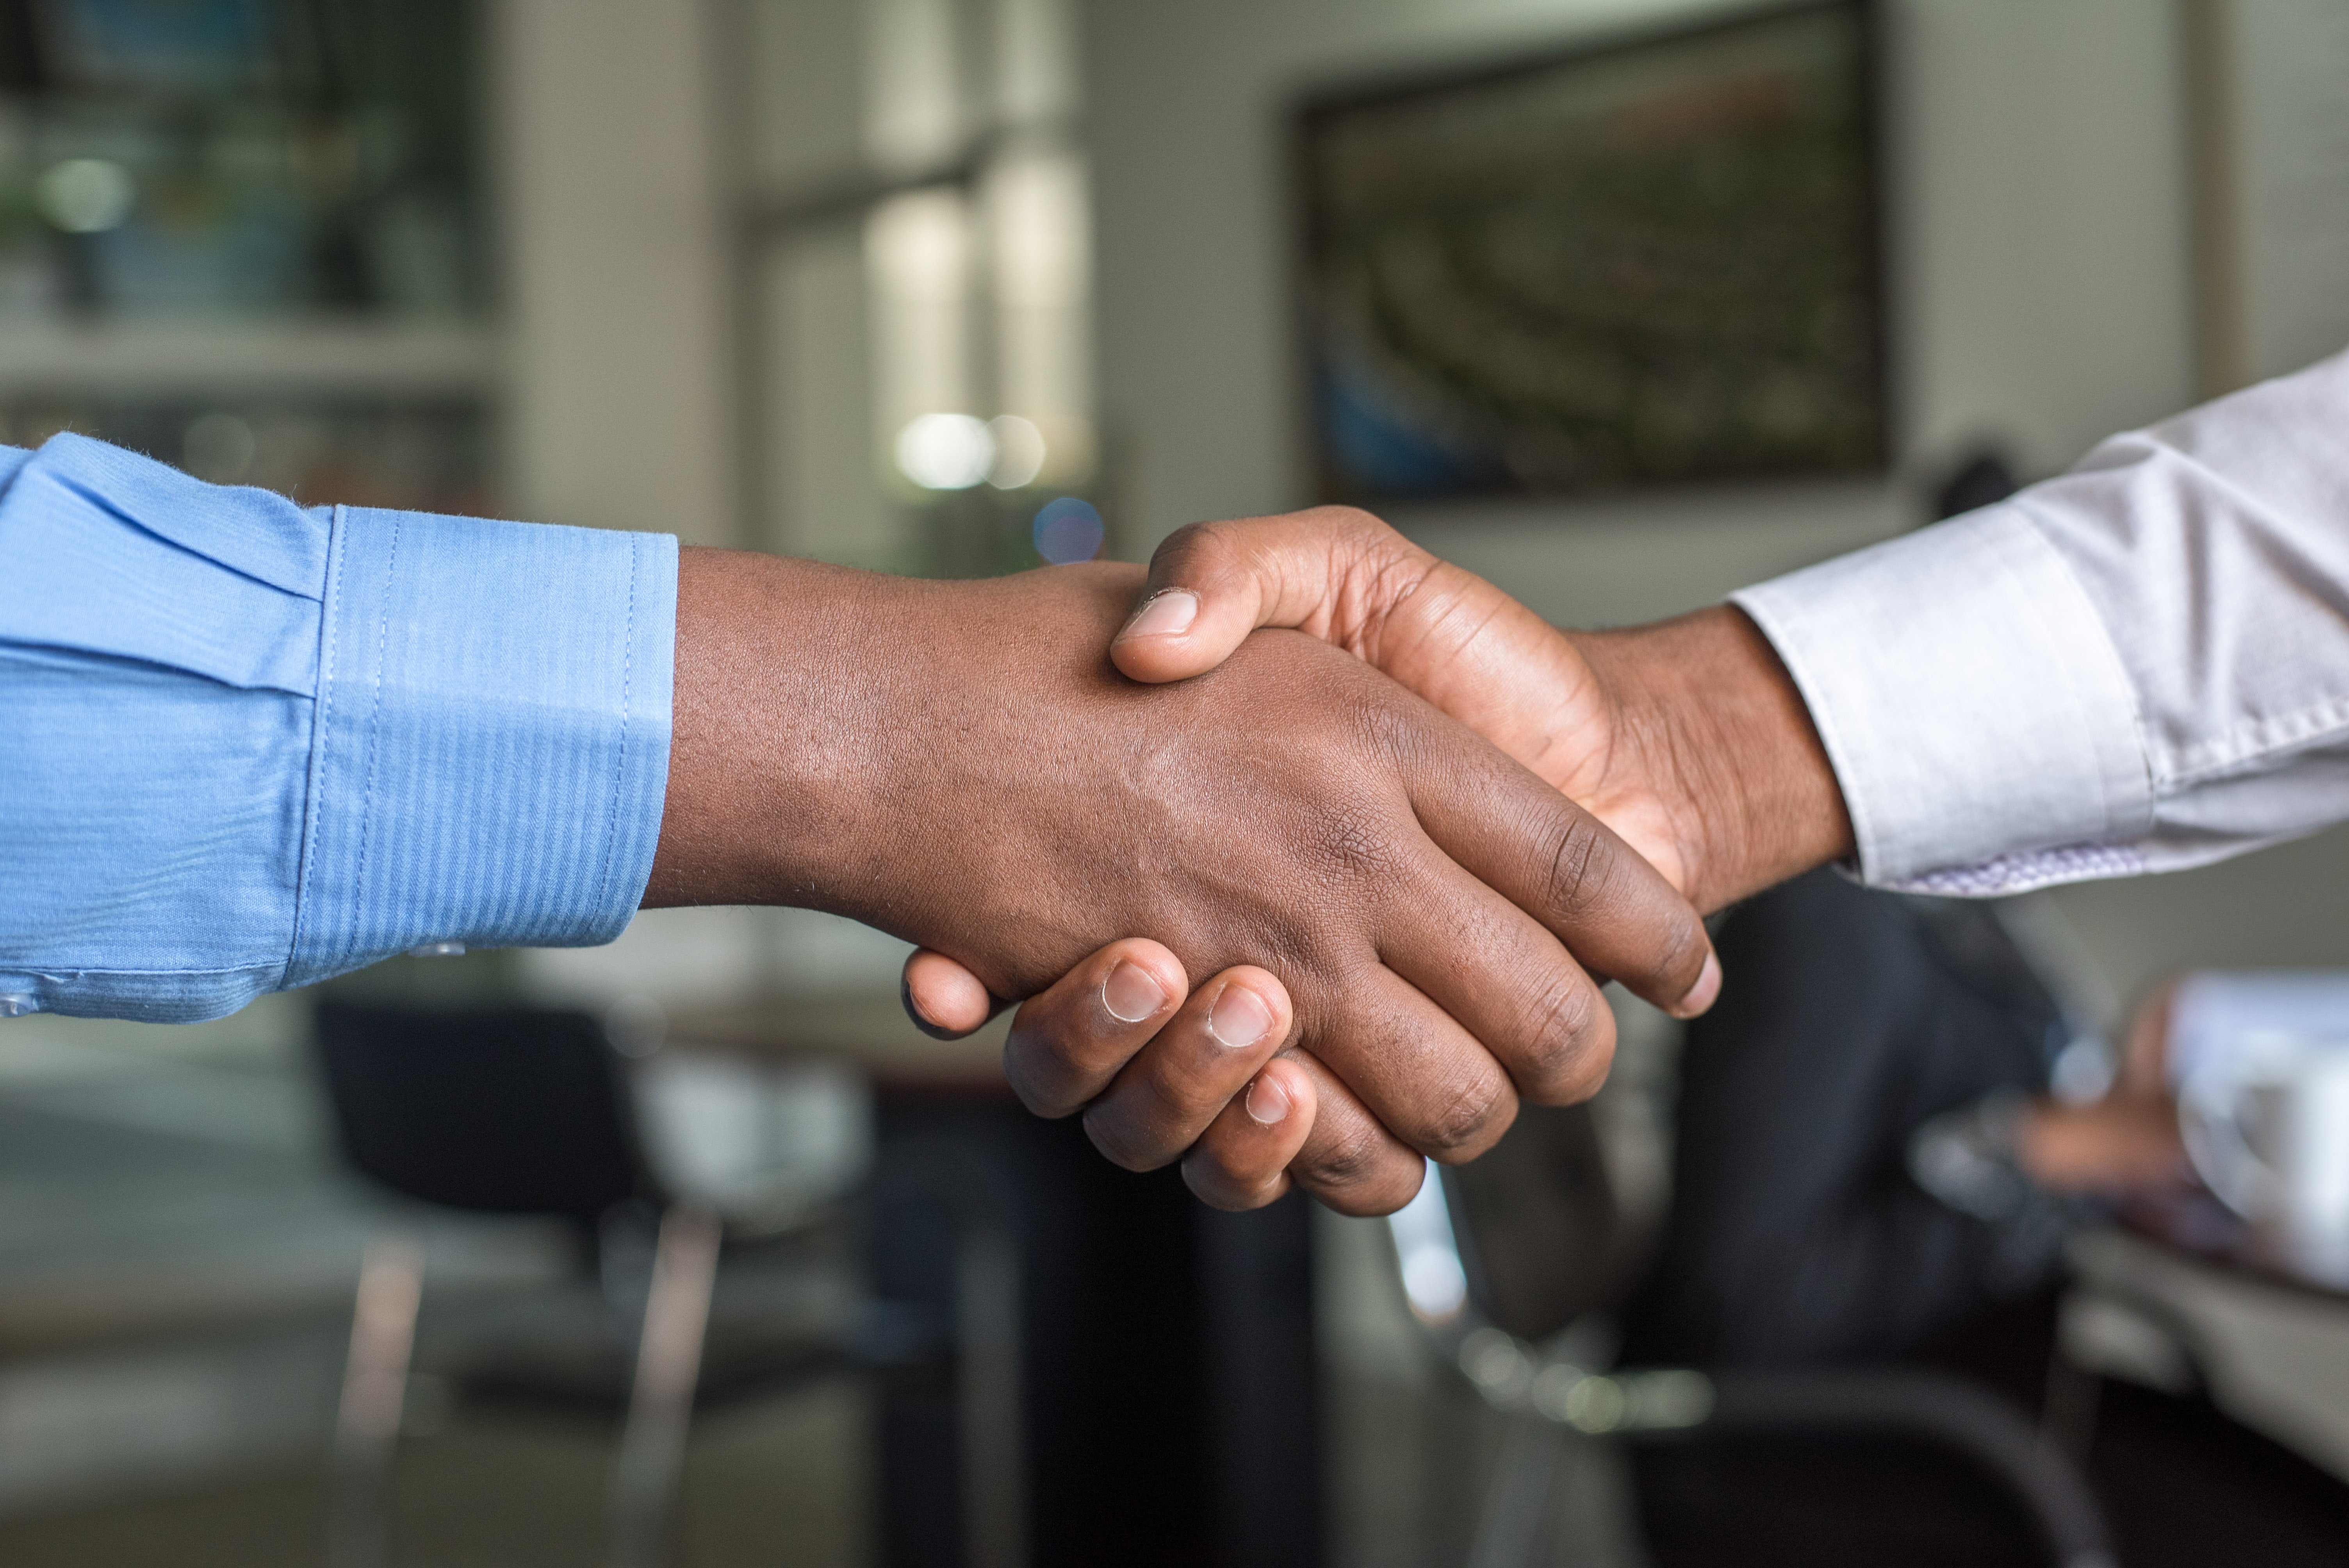 Two people shaking hands | Source: Unsplash